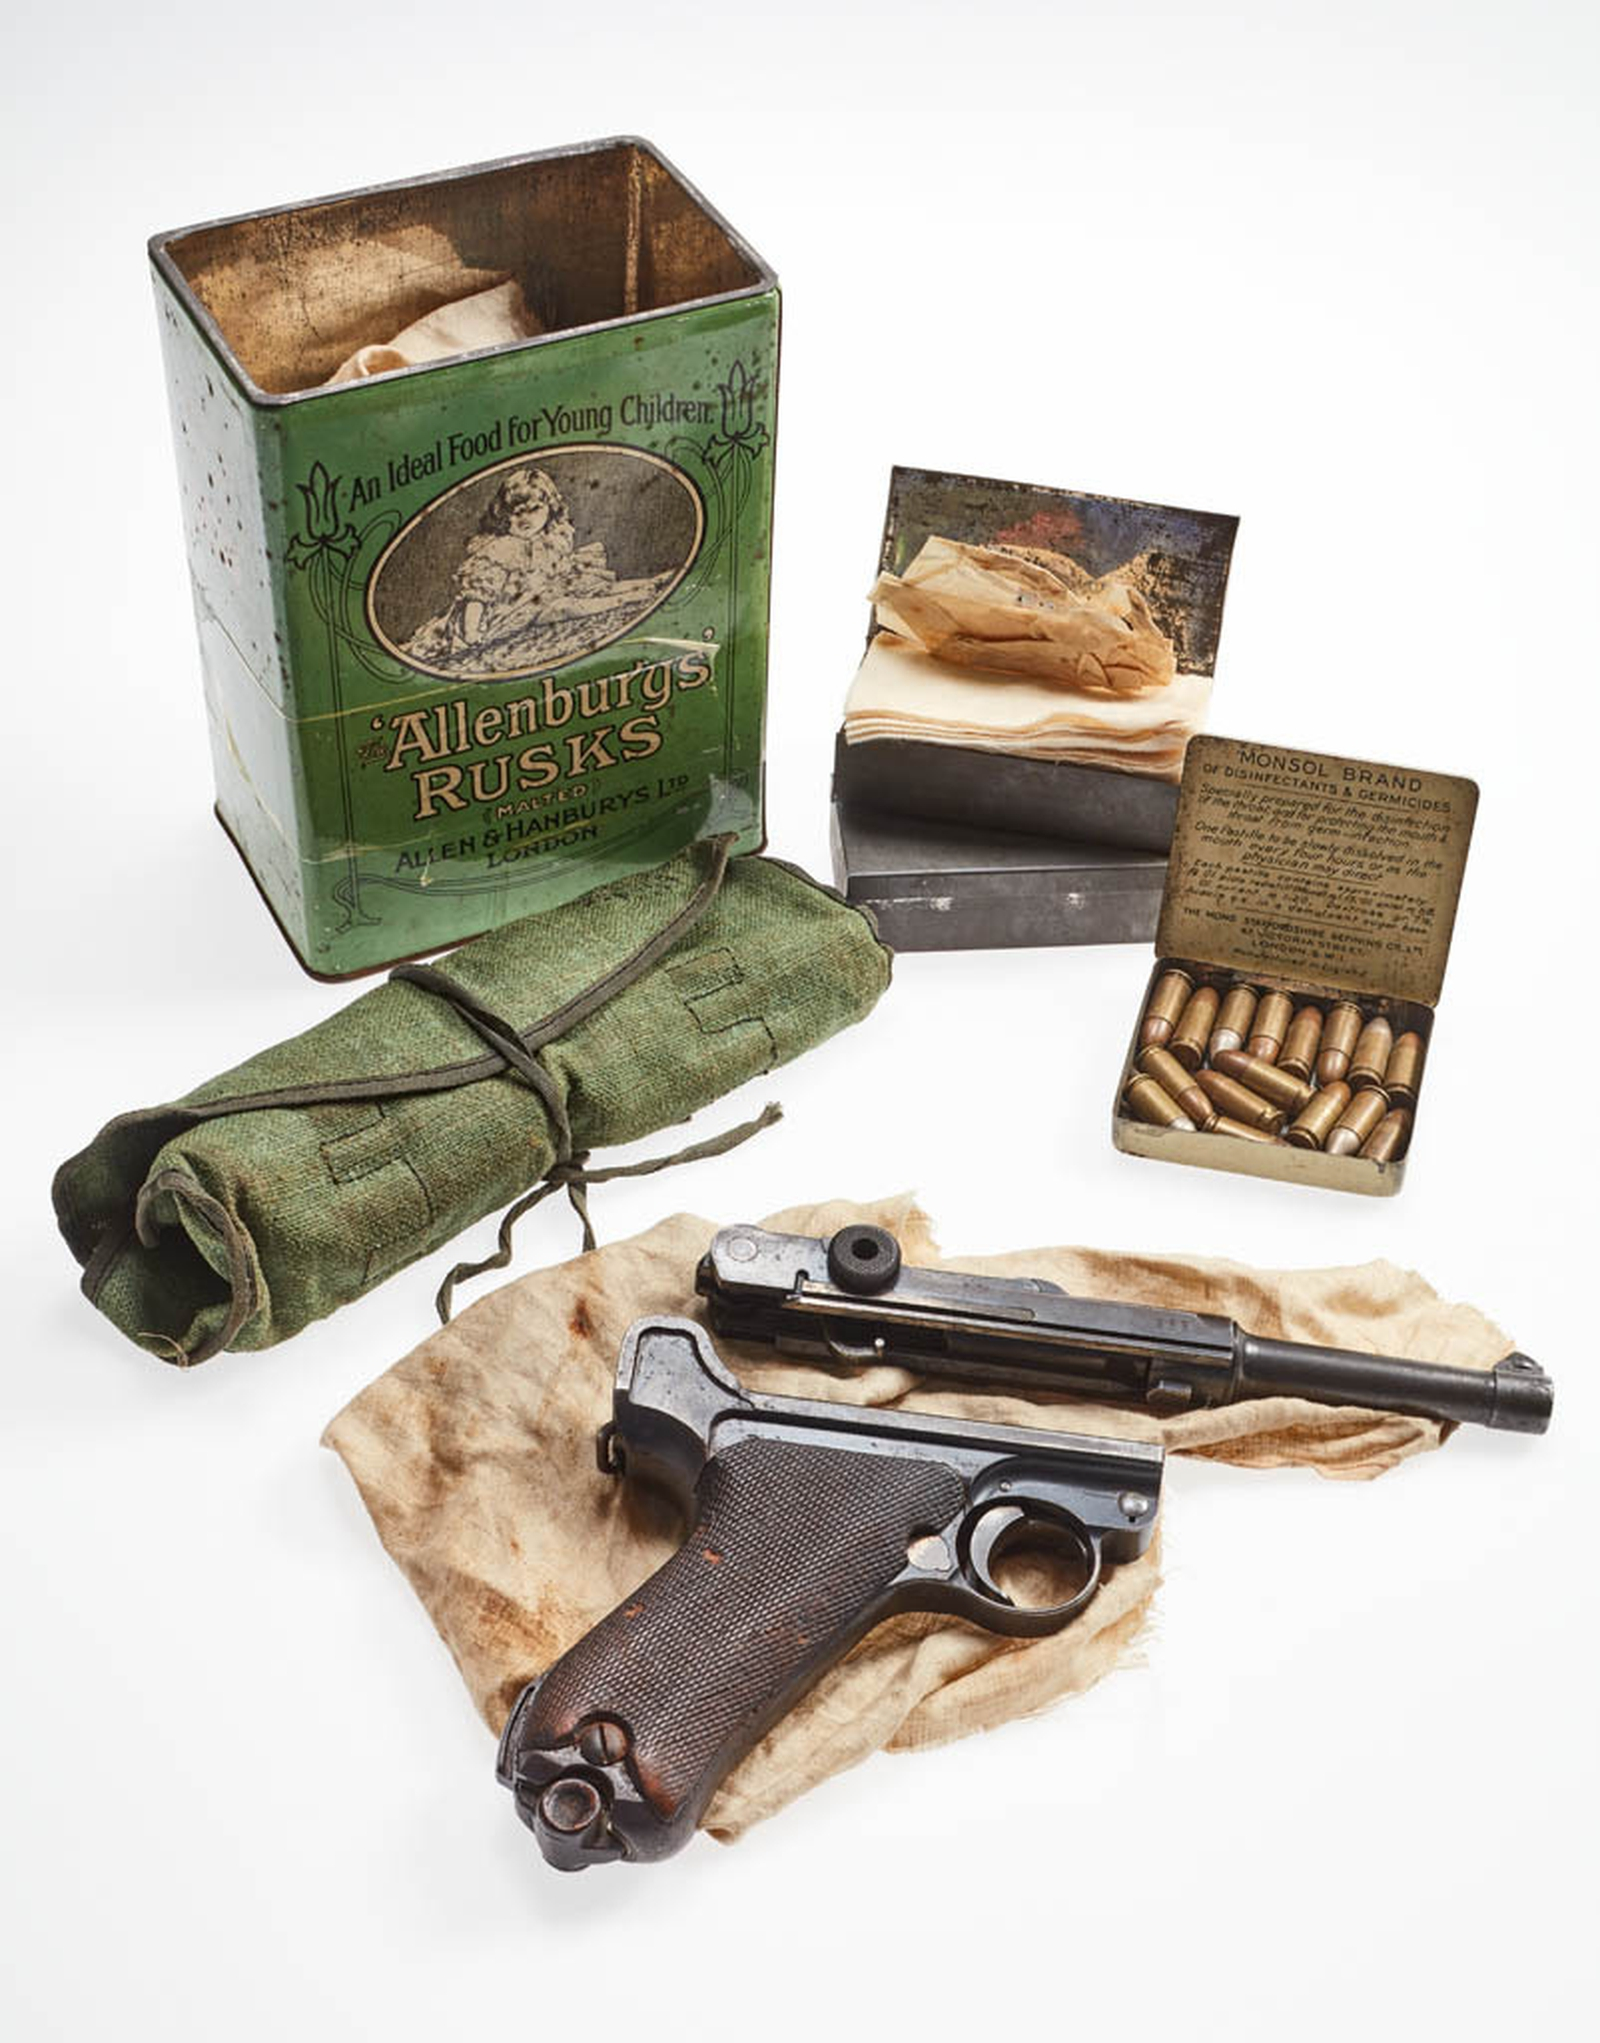 Image - Luger pistol, ammunition and cleaning kit found stashed in a Allensbury's Rusk tin, c. 1922. Image courtesy of the National Museum of Ireland HA:2012.25